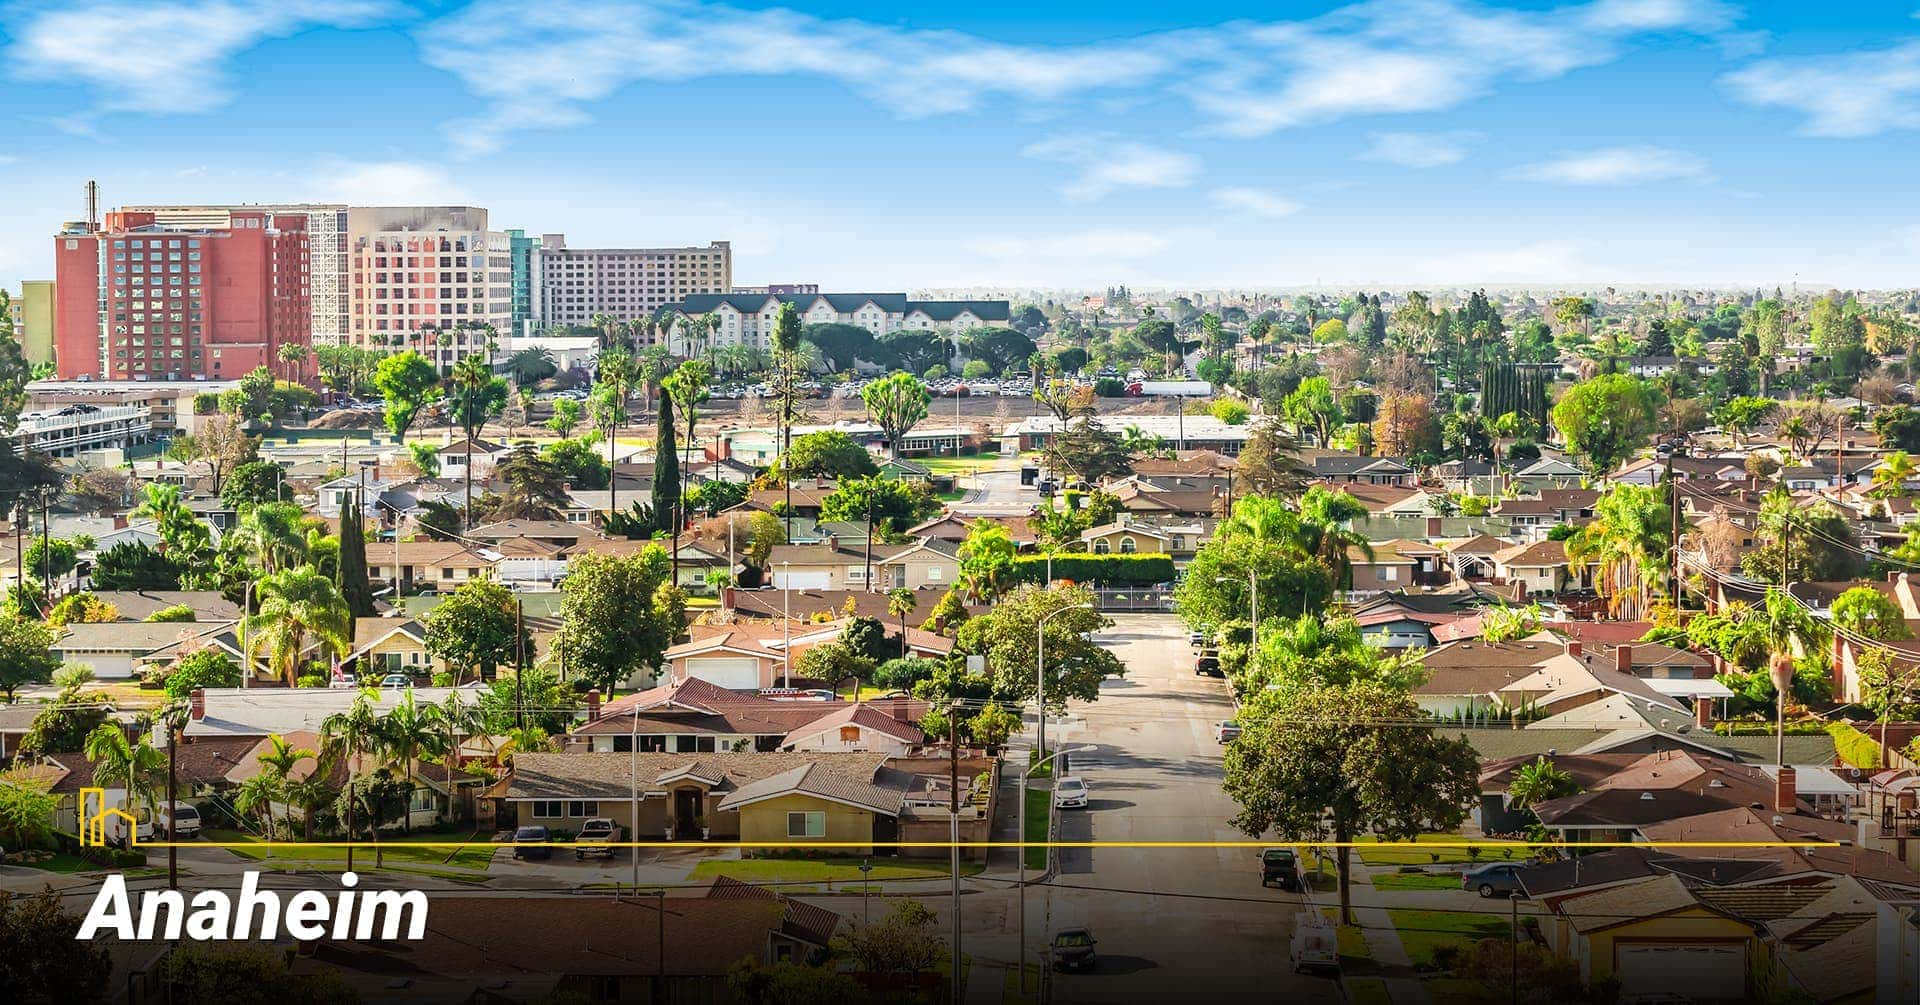 Anaheim city in southern California